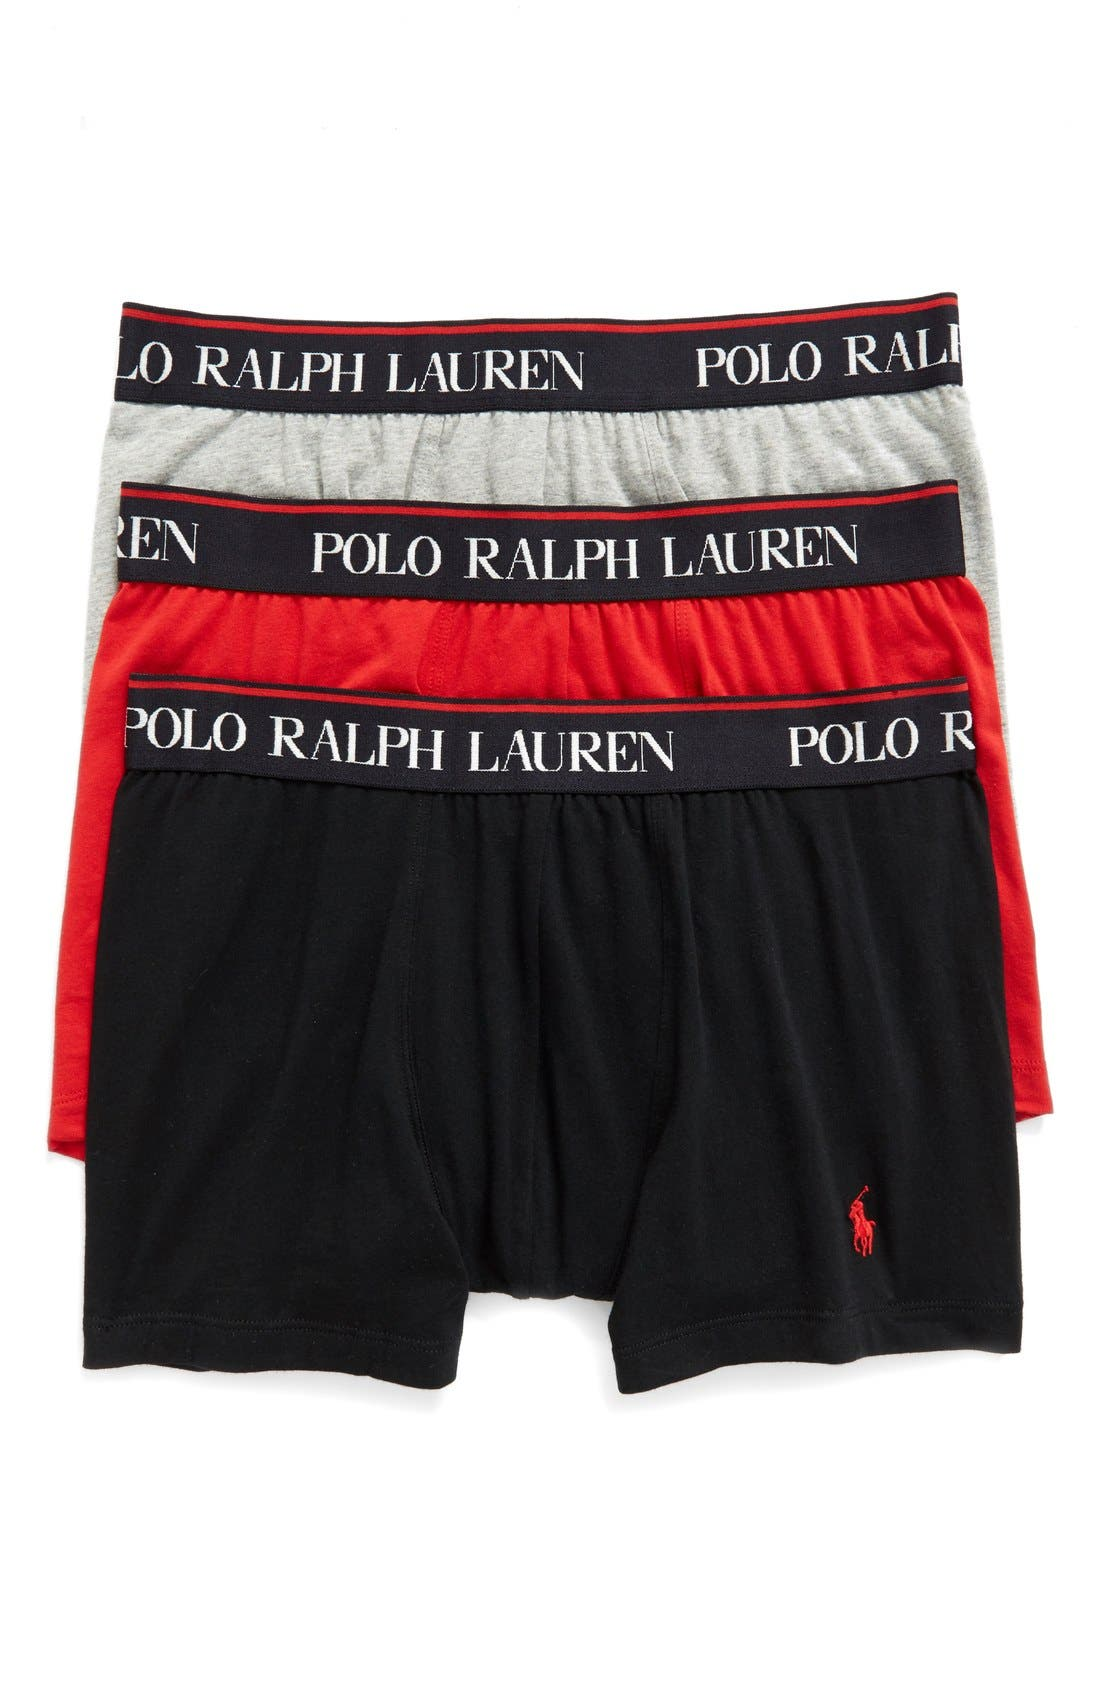 Polo Ralph Lauren 3-Pack Stretch Cotton Boxer Briefs